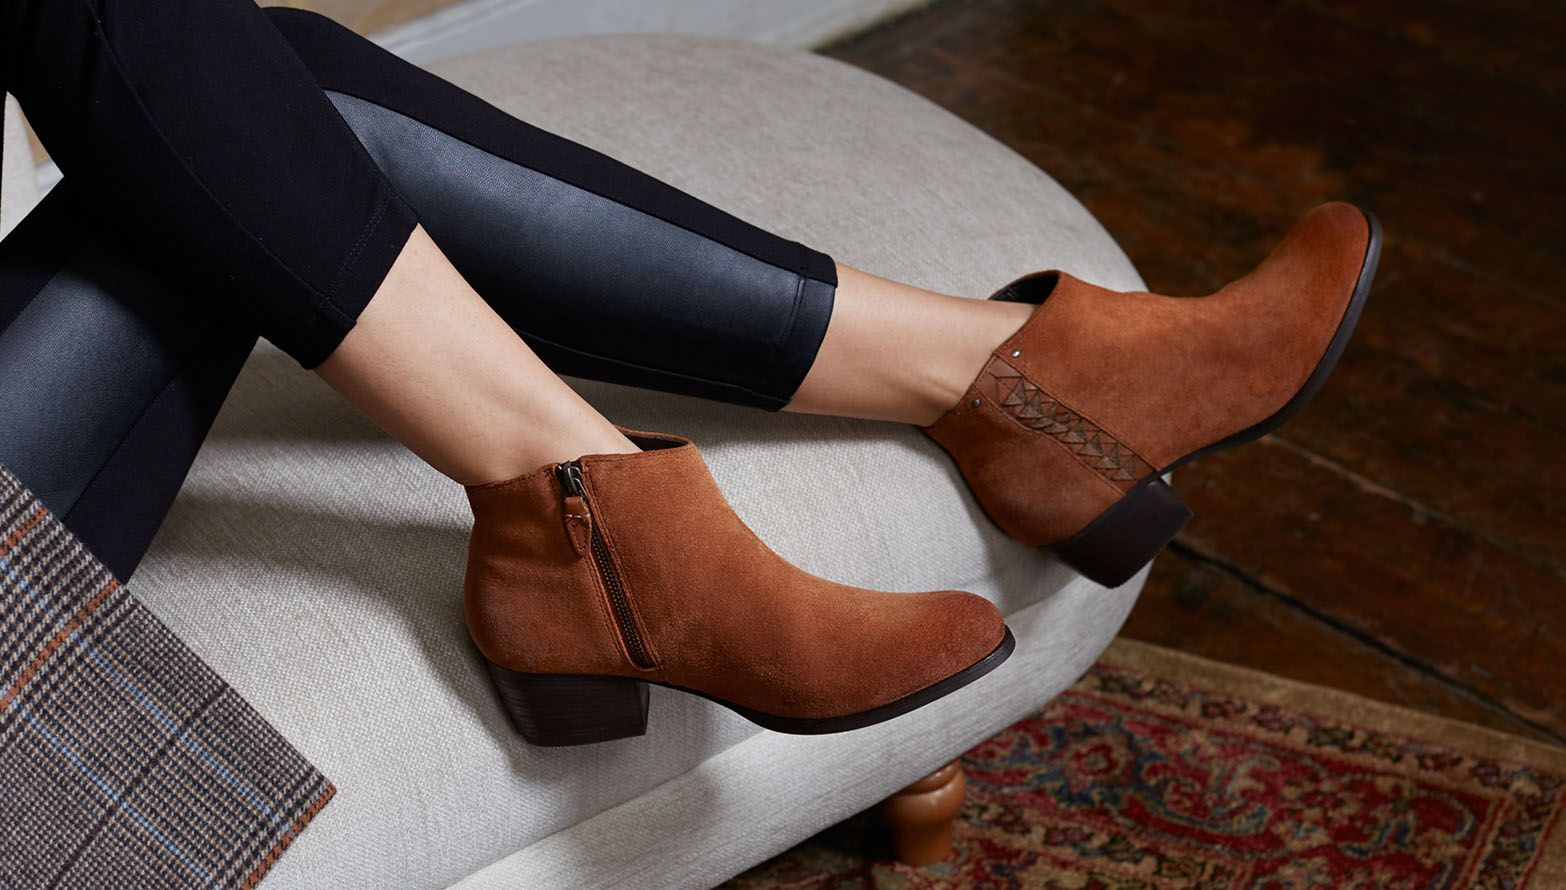 Qvc Uk Clarks Shoes And Boots in 2020